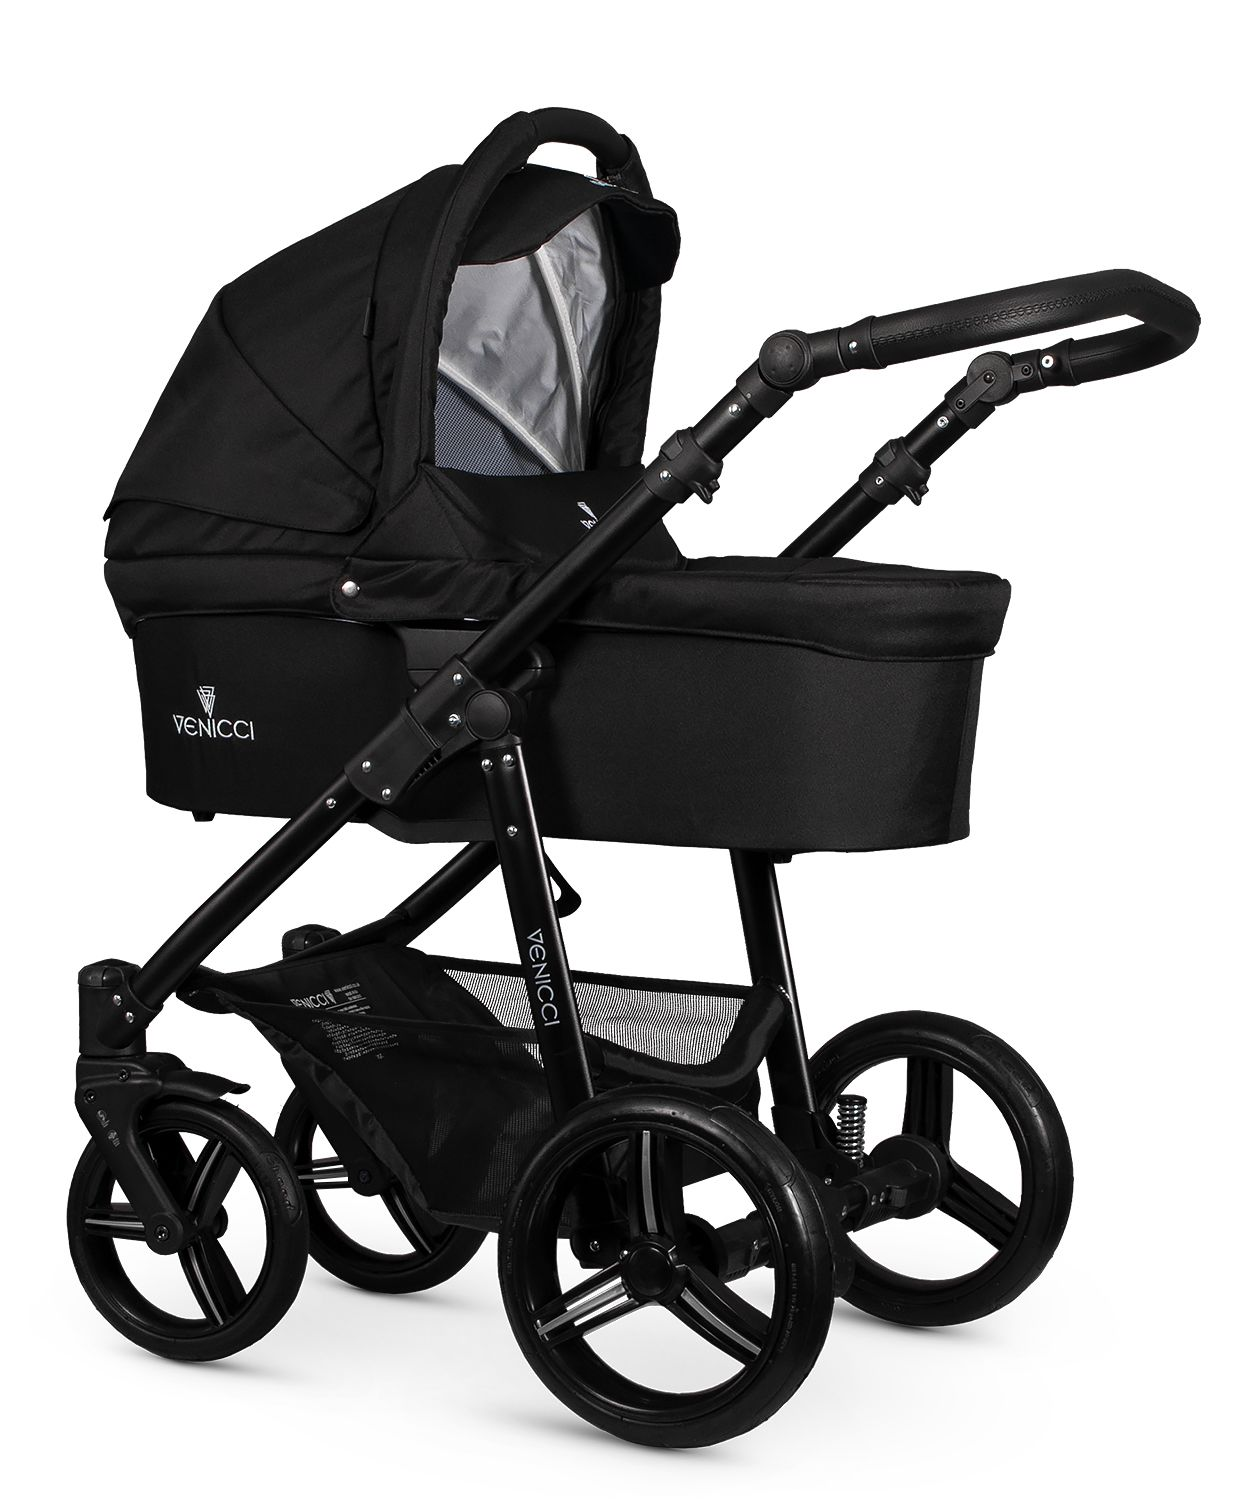 venicci-soft-black-carrycot-black-frame.